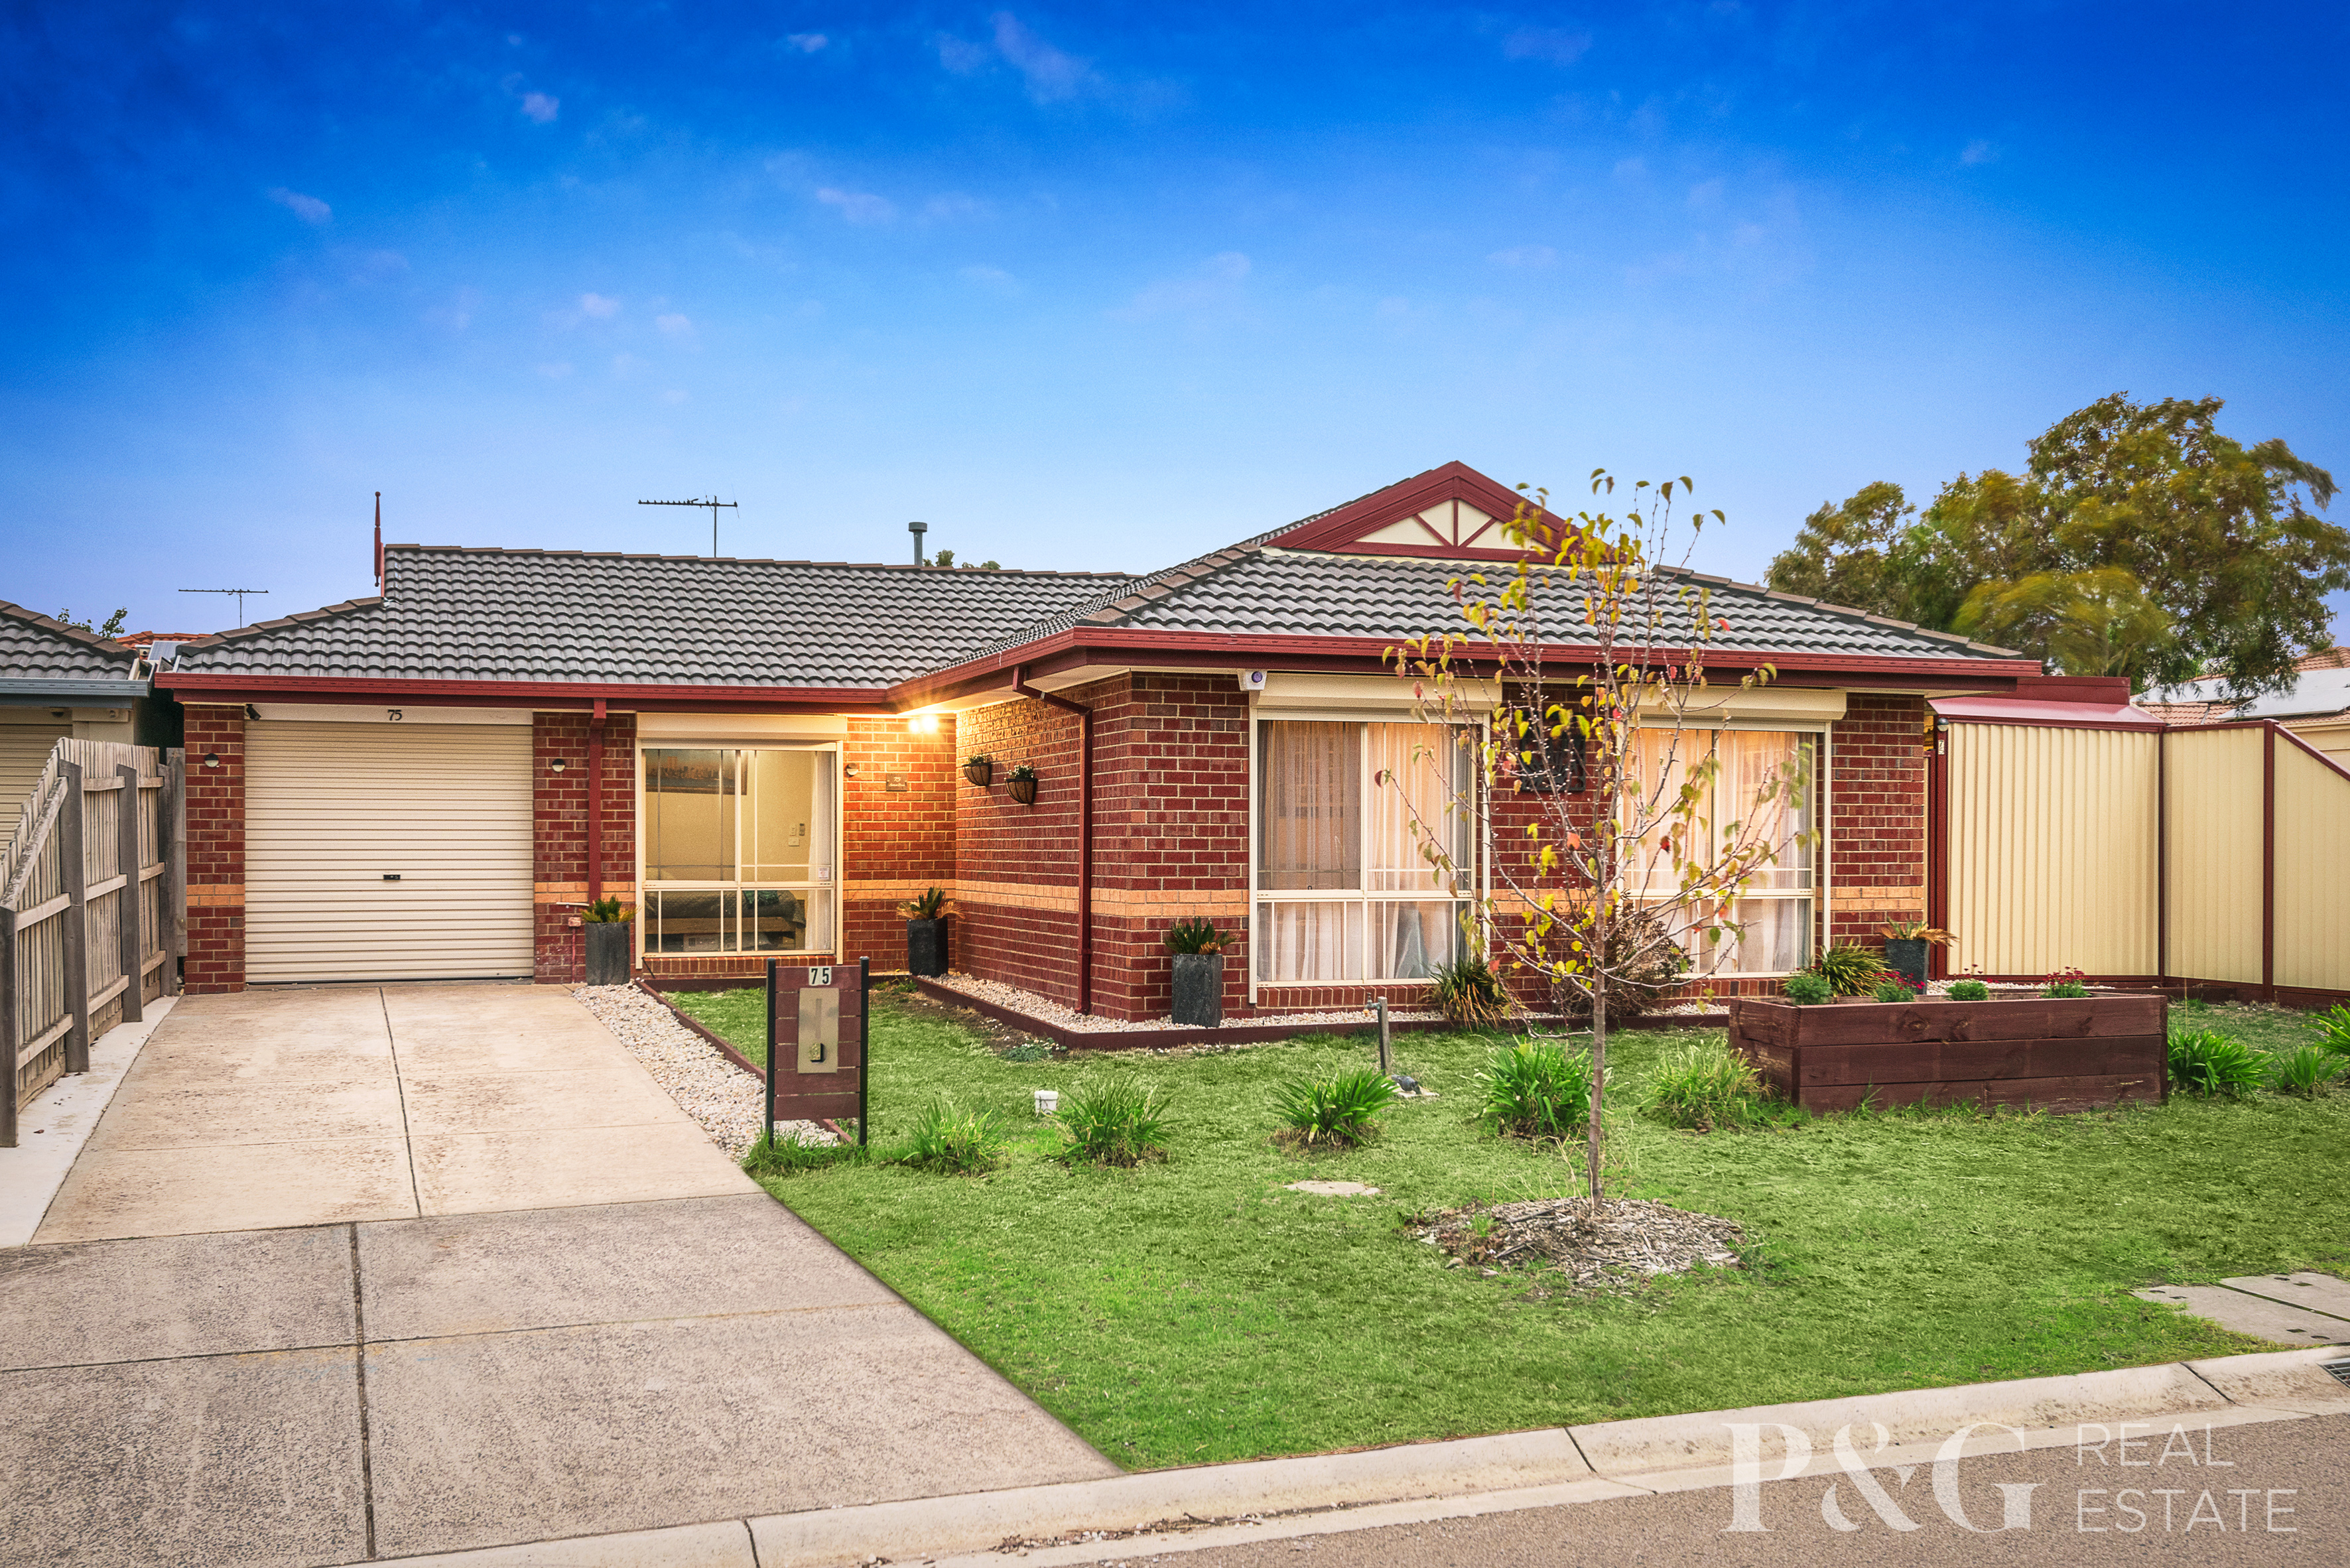 75 Seebeck Drive, NARRE WARREN SOUTH, VIC, 3805 - Image